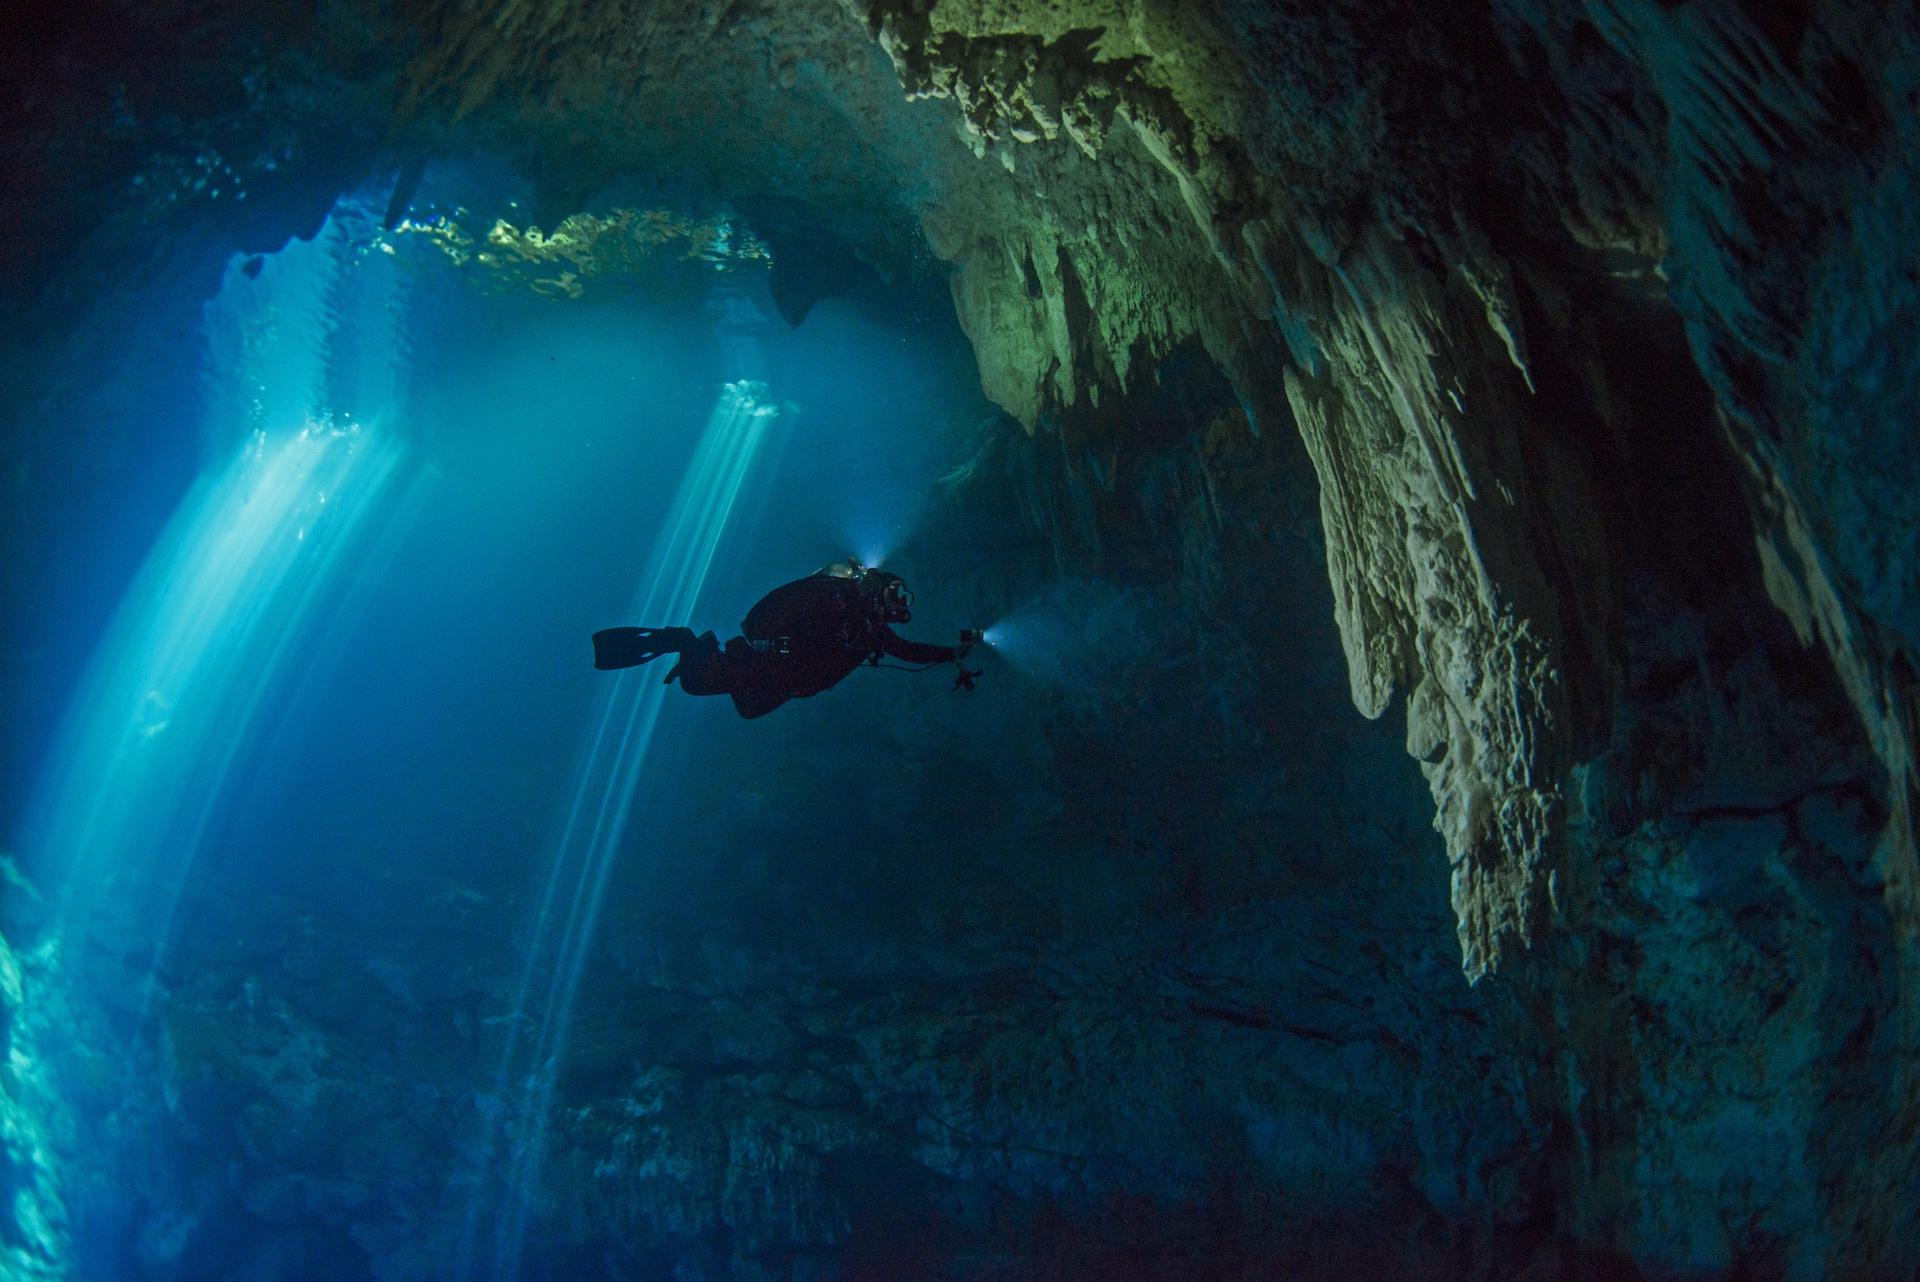 Narrow beams of light can be seen coming through the various entrances of the El Pit Cenote. The small entrance belies the size of the large cylindrical cavern we entered, which led further to many passages and caves. Ten metres down, an overhang with beautiful stalactites came into sight, and then, the hydrogen sulphide cloud, a mix in a turgid blur, followed by saltwater.